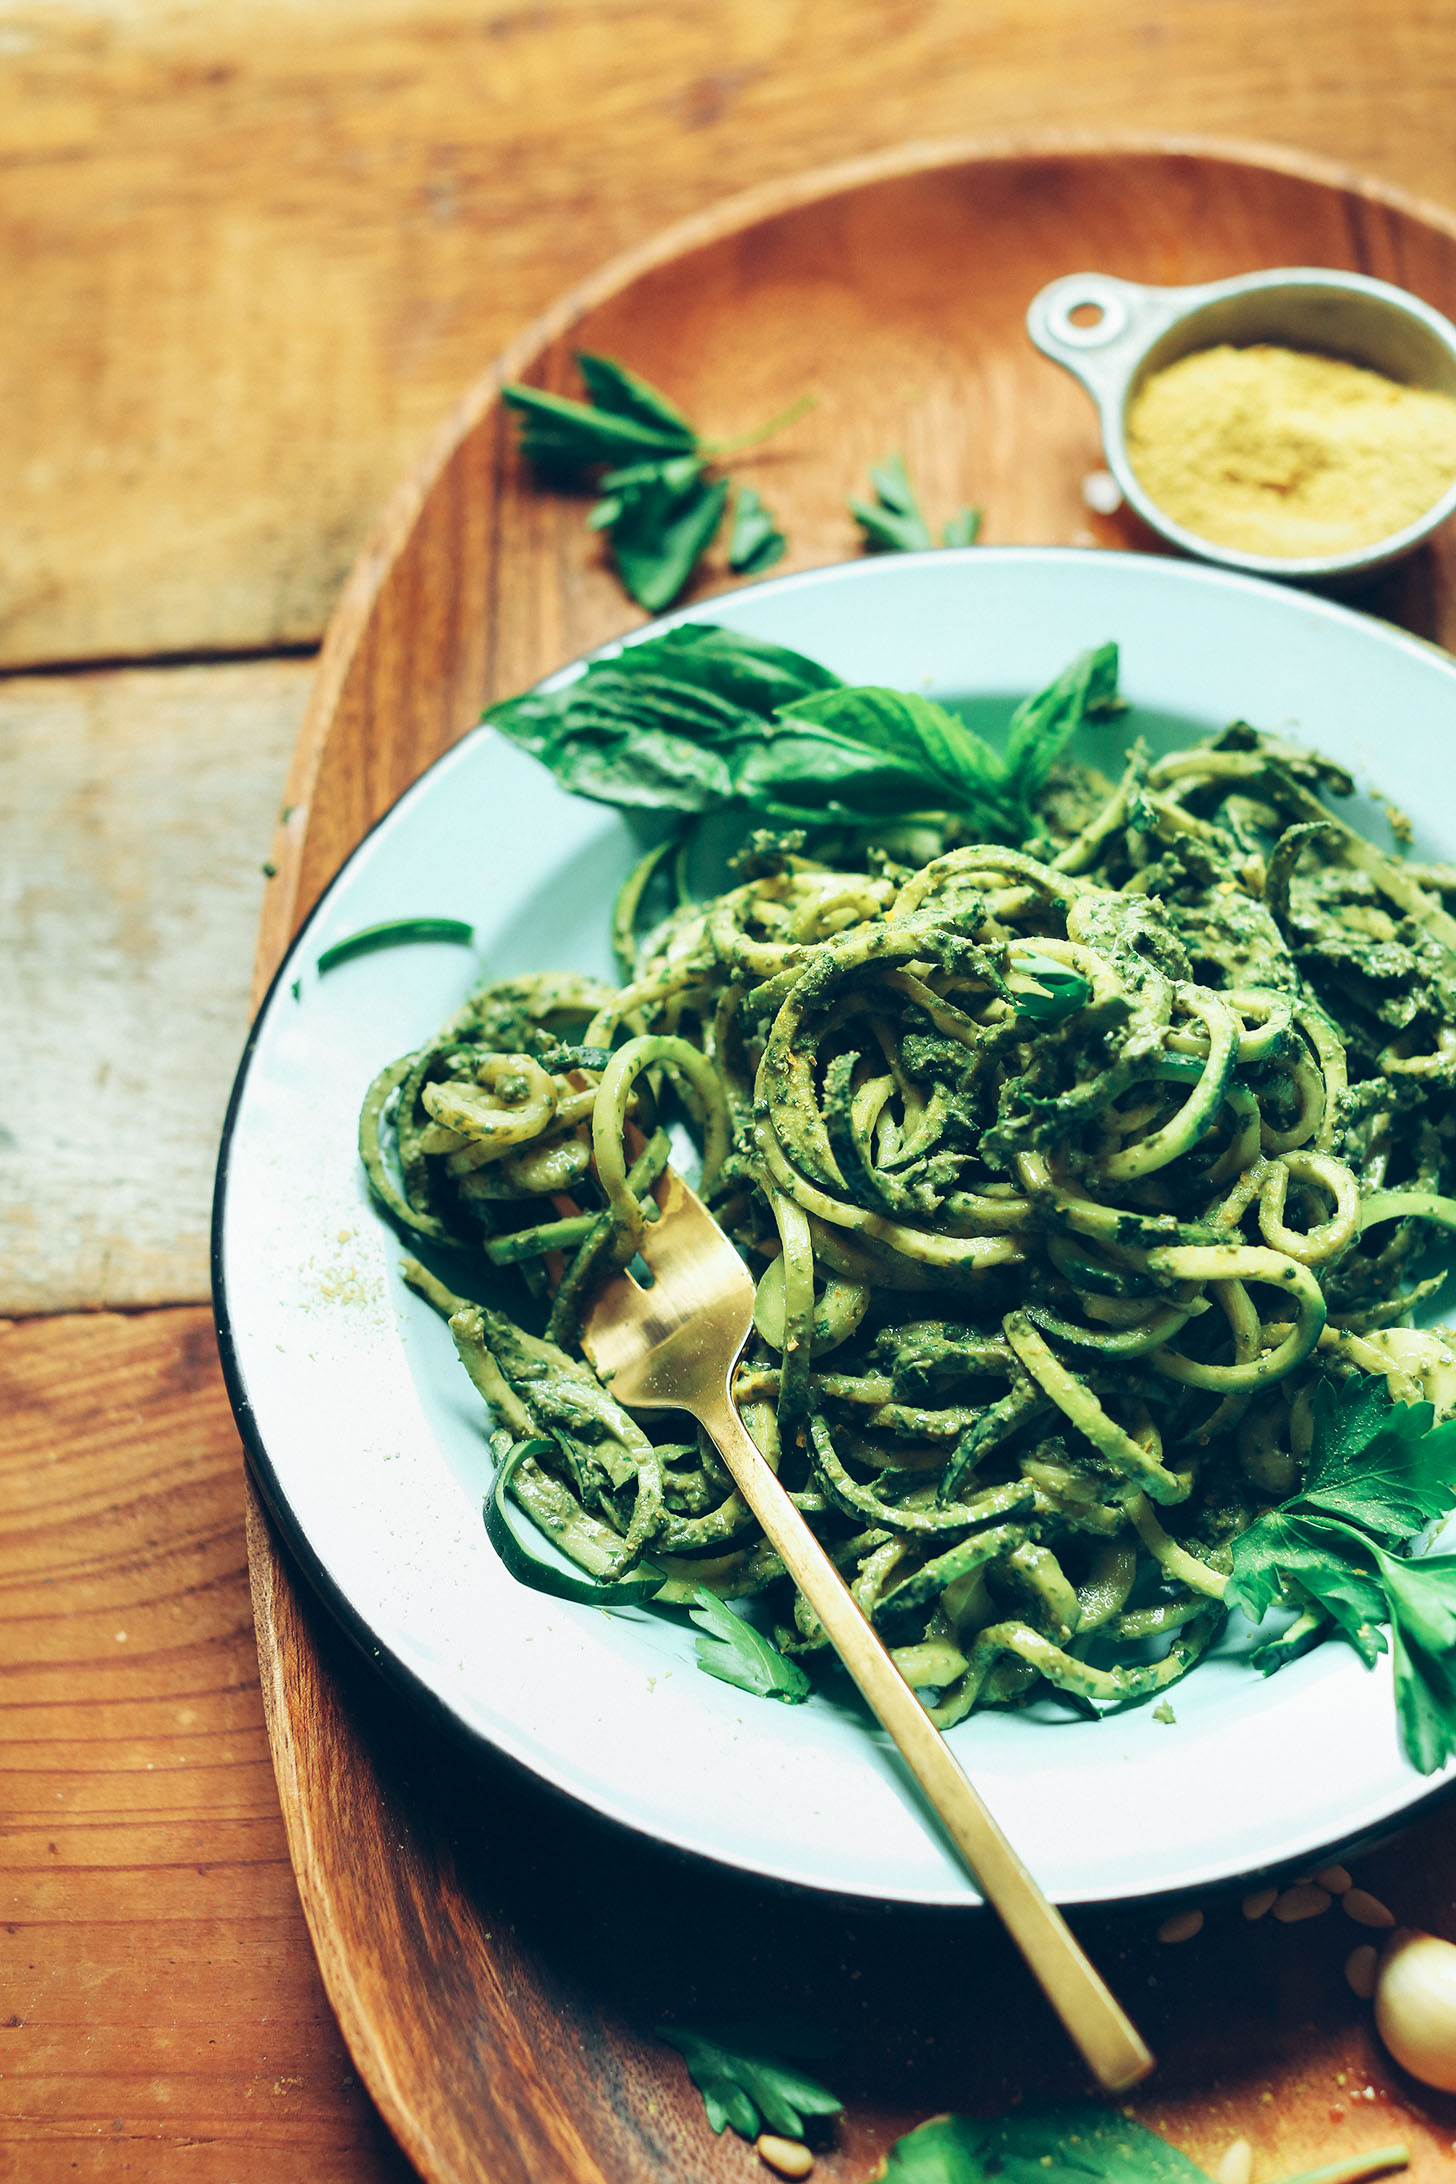 Bowl of spiralized zucchini noodles with Easy Vegan Pesto